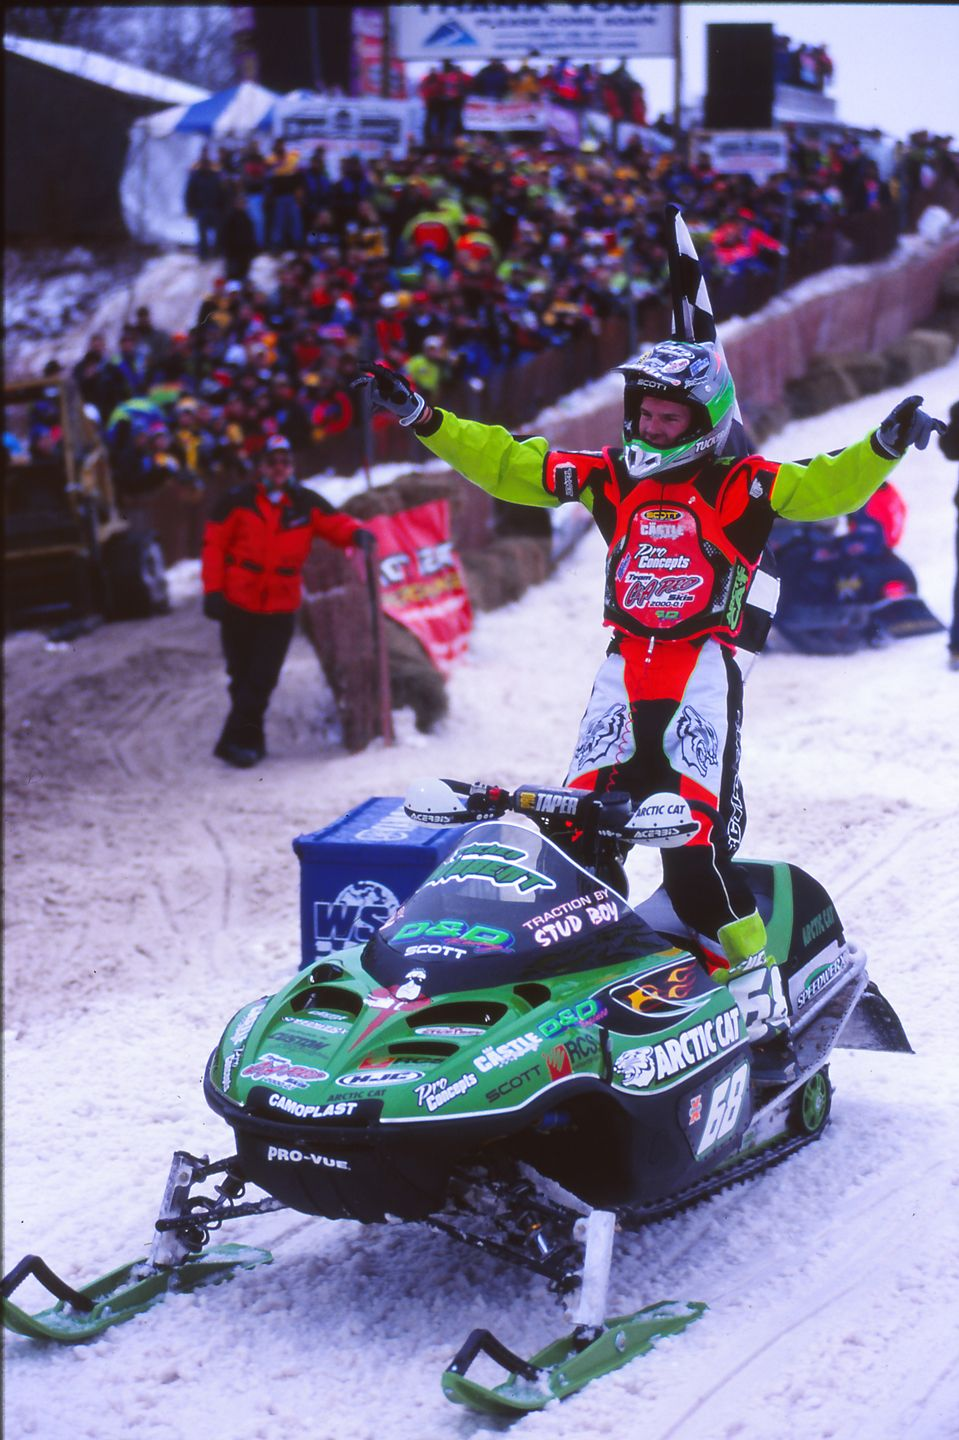 Tucker Hibbert wins Pro Open in his debut in the class, circa 2000. Photo by ArcticInsider.com